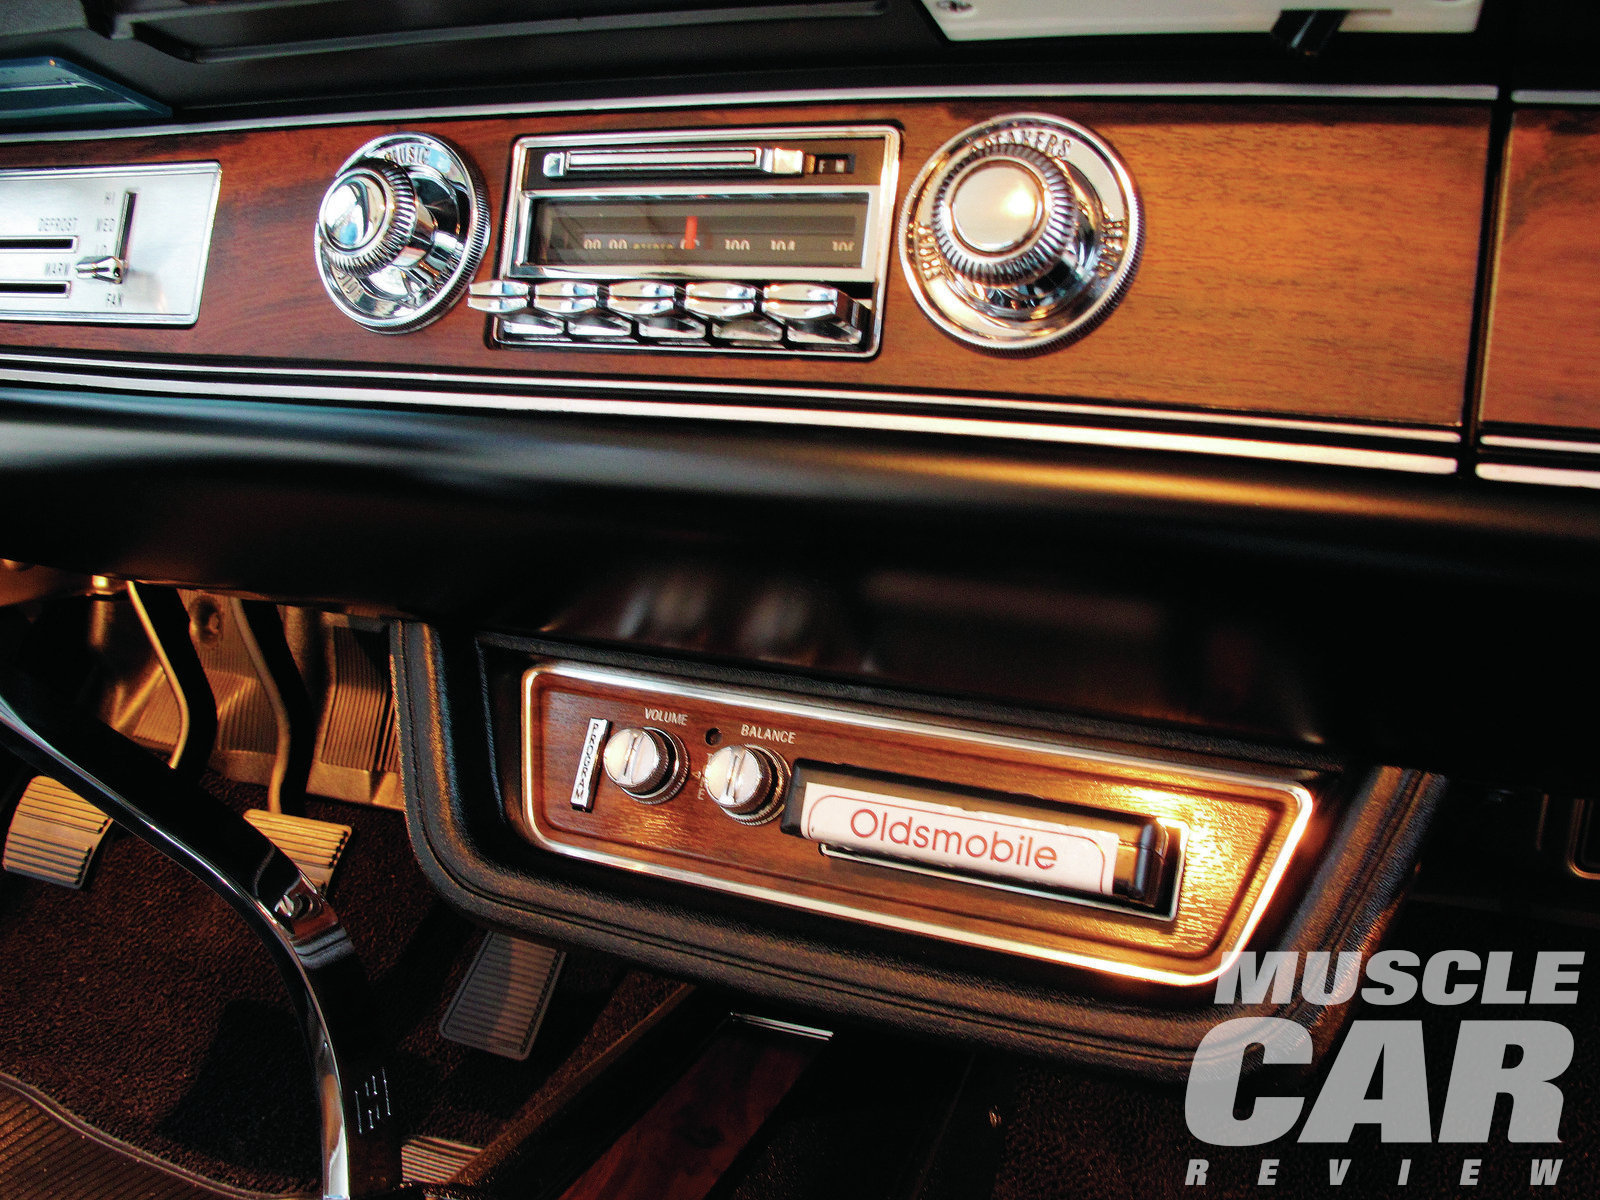 The interior of James' W-30 is showroom fresh and inviting, from the immaculate white upholstery to the tastefully understated choice of options—like the underdash tape deck.